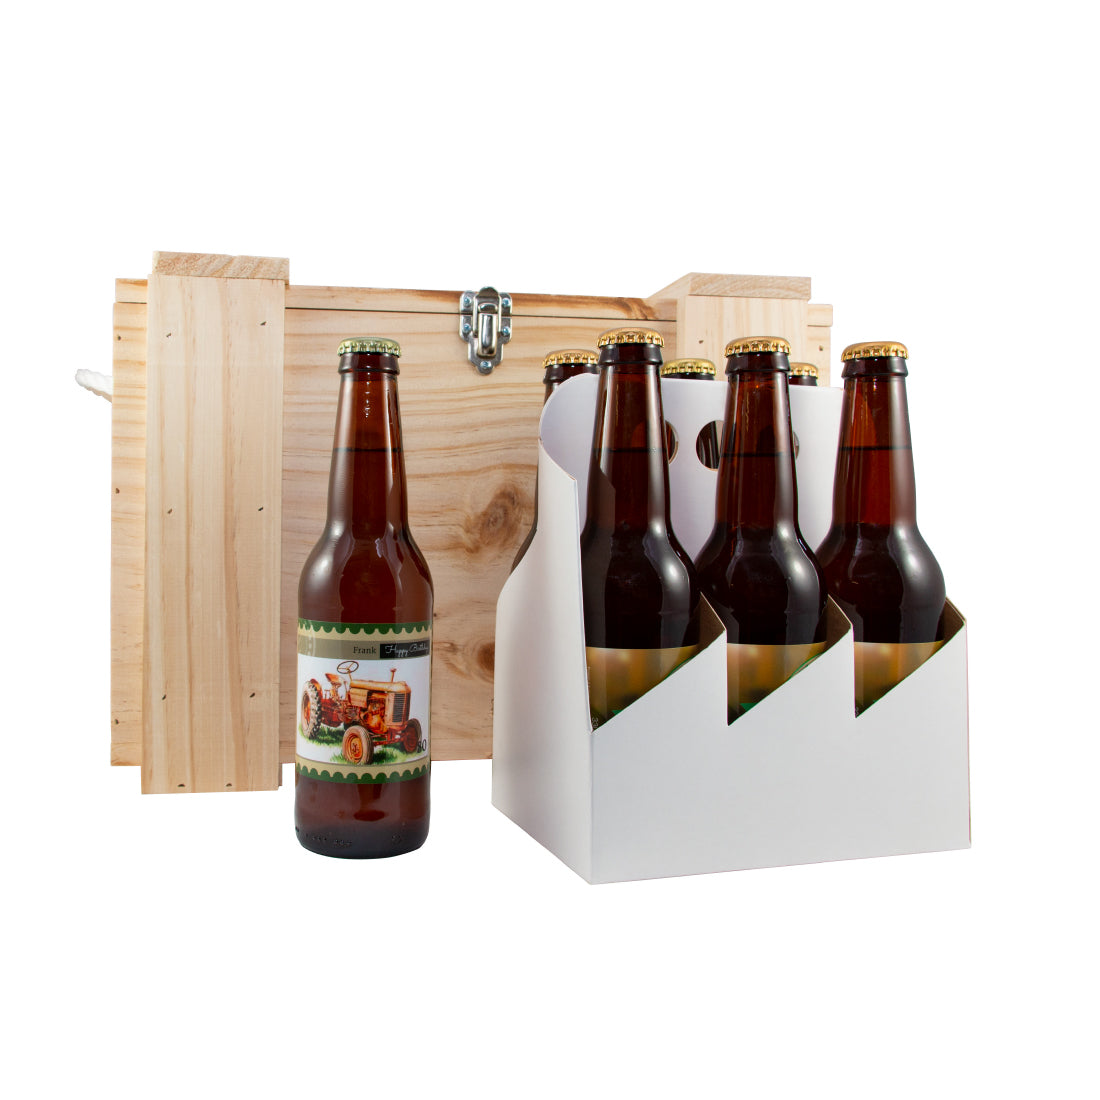 Craft Lager - Wooden Beer Box - 330ml - Carton of 24